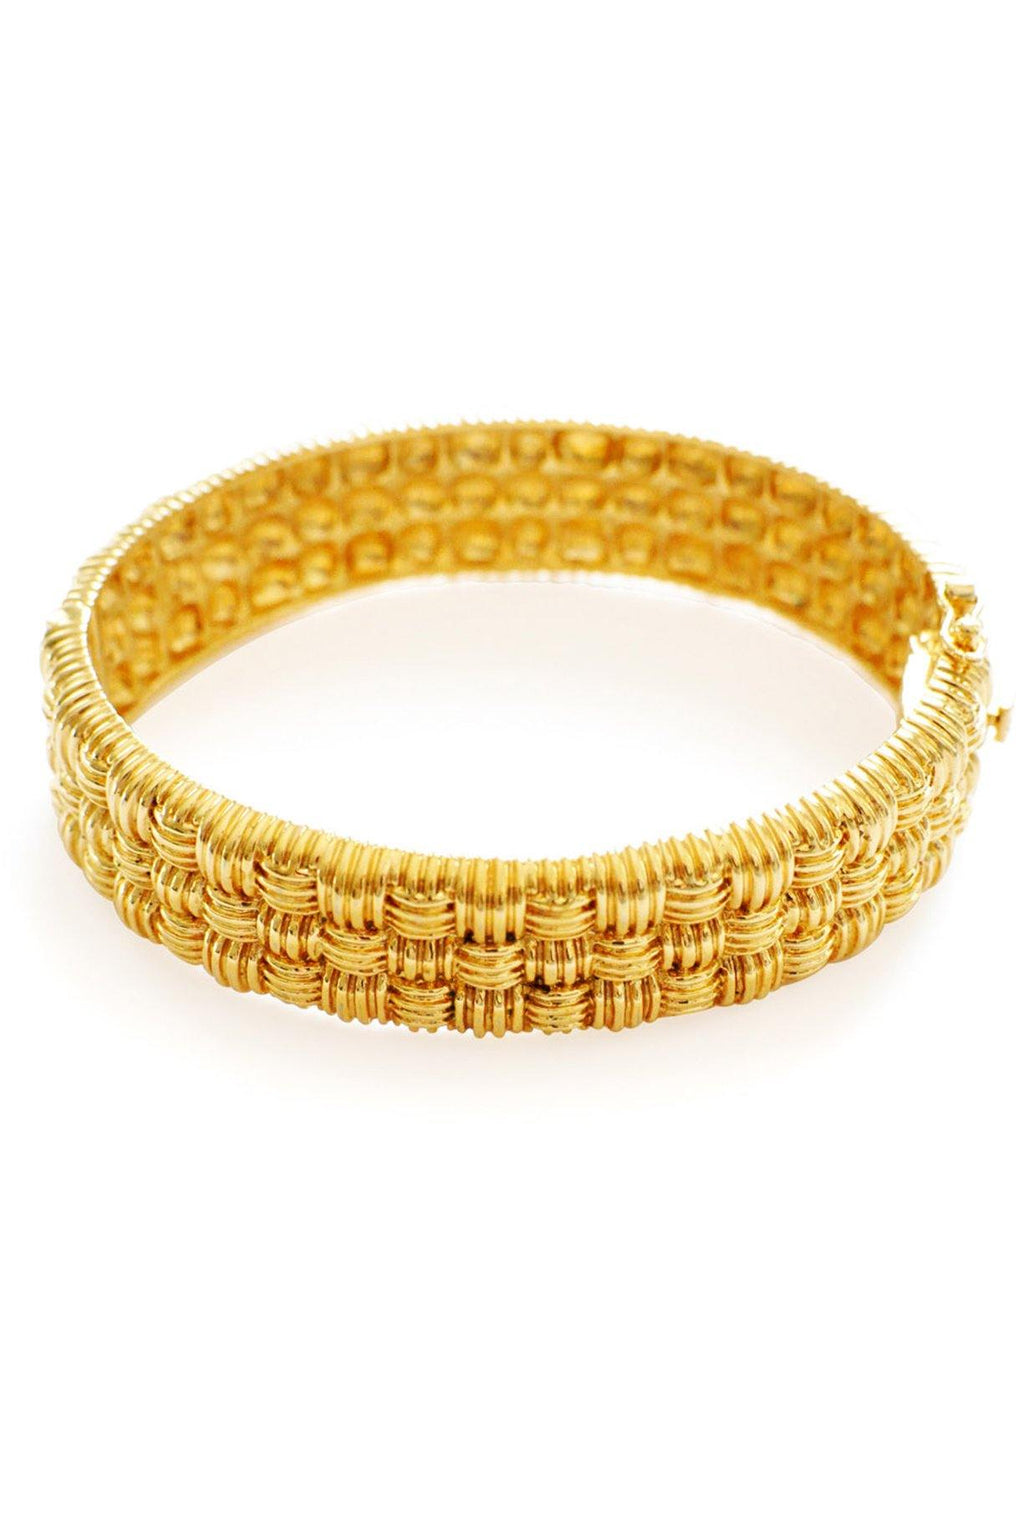 Textured Gold Bangle